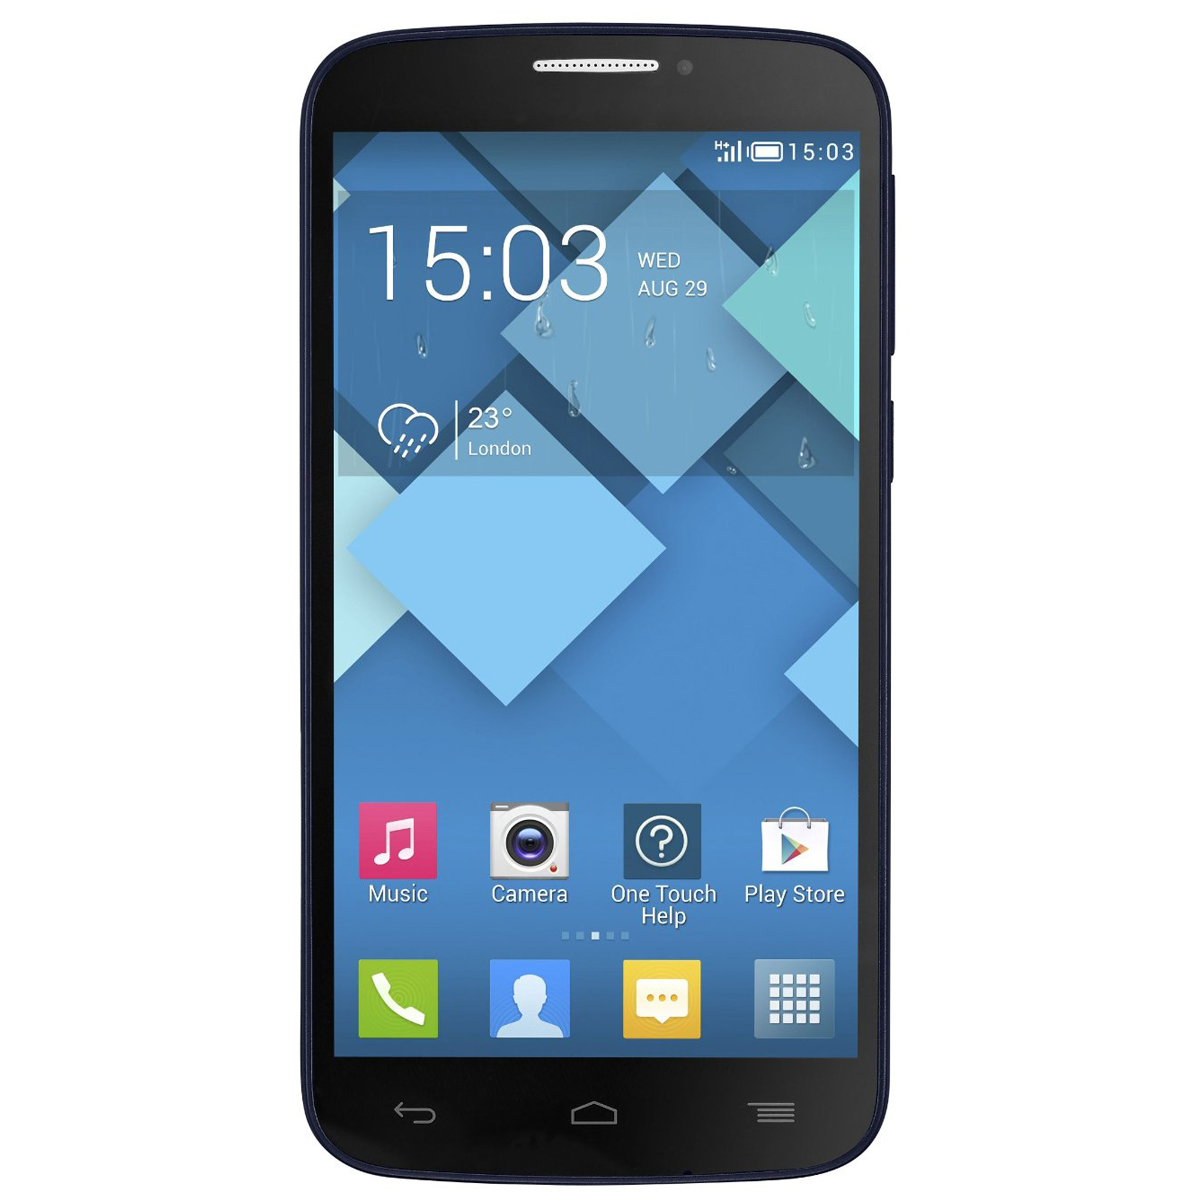 alcatel one touch pop c7 noir mobile smartphone. Black Bedroom Furniture Sets. Home Design Ideas